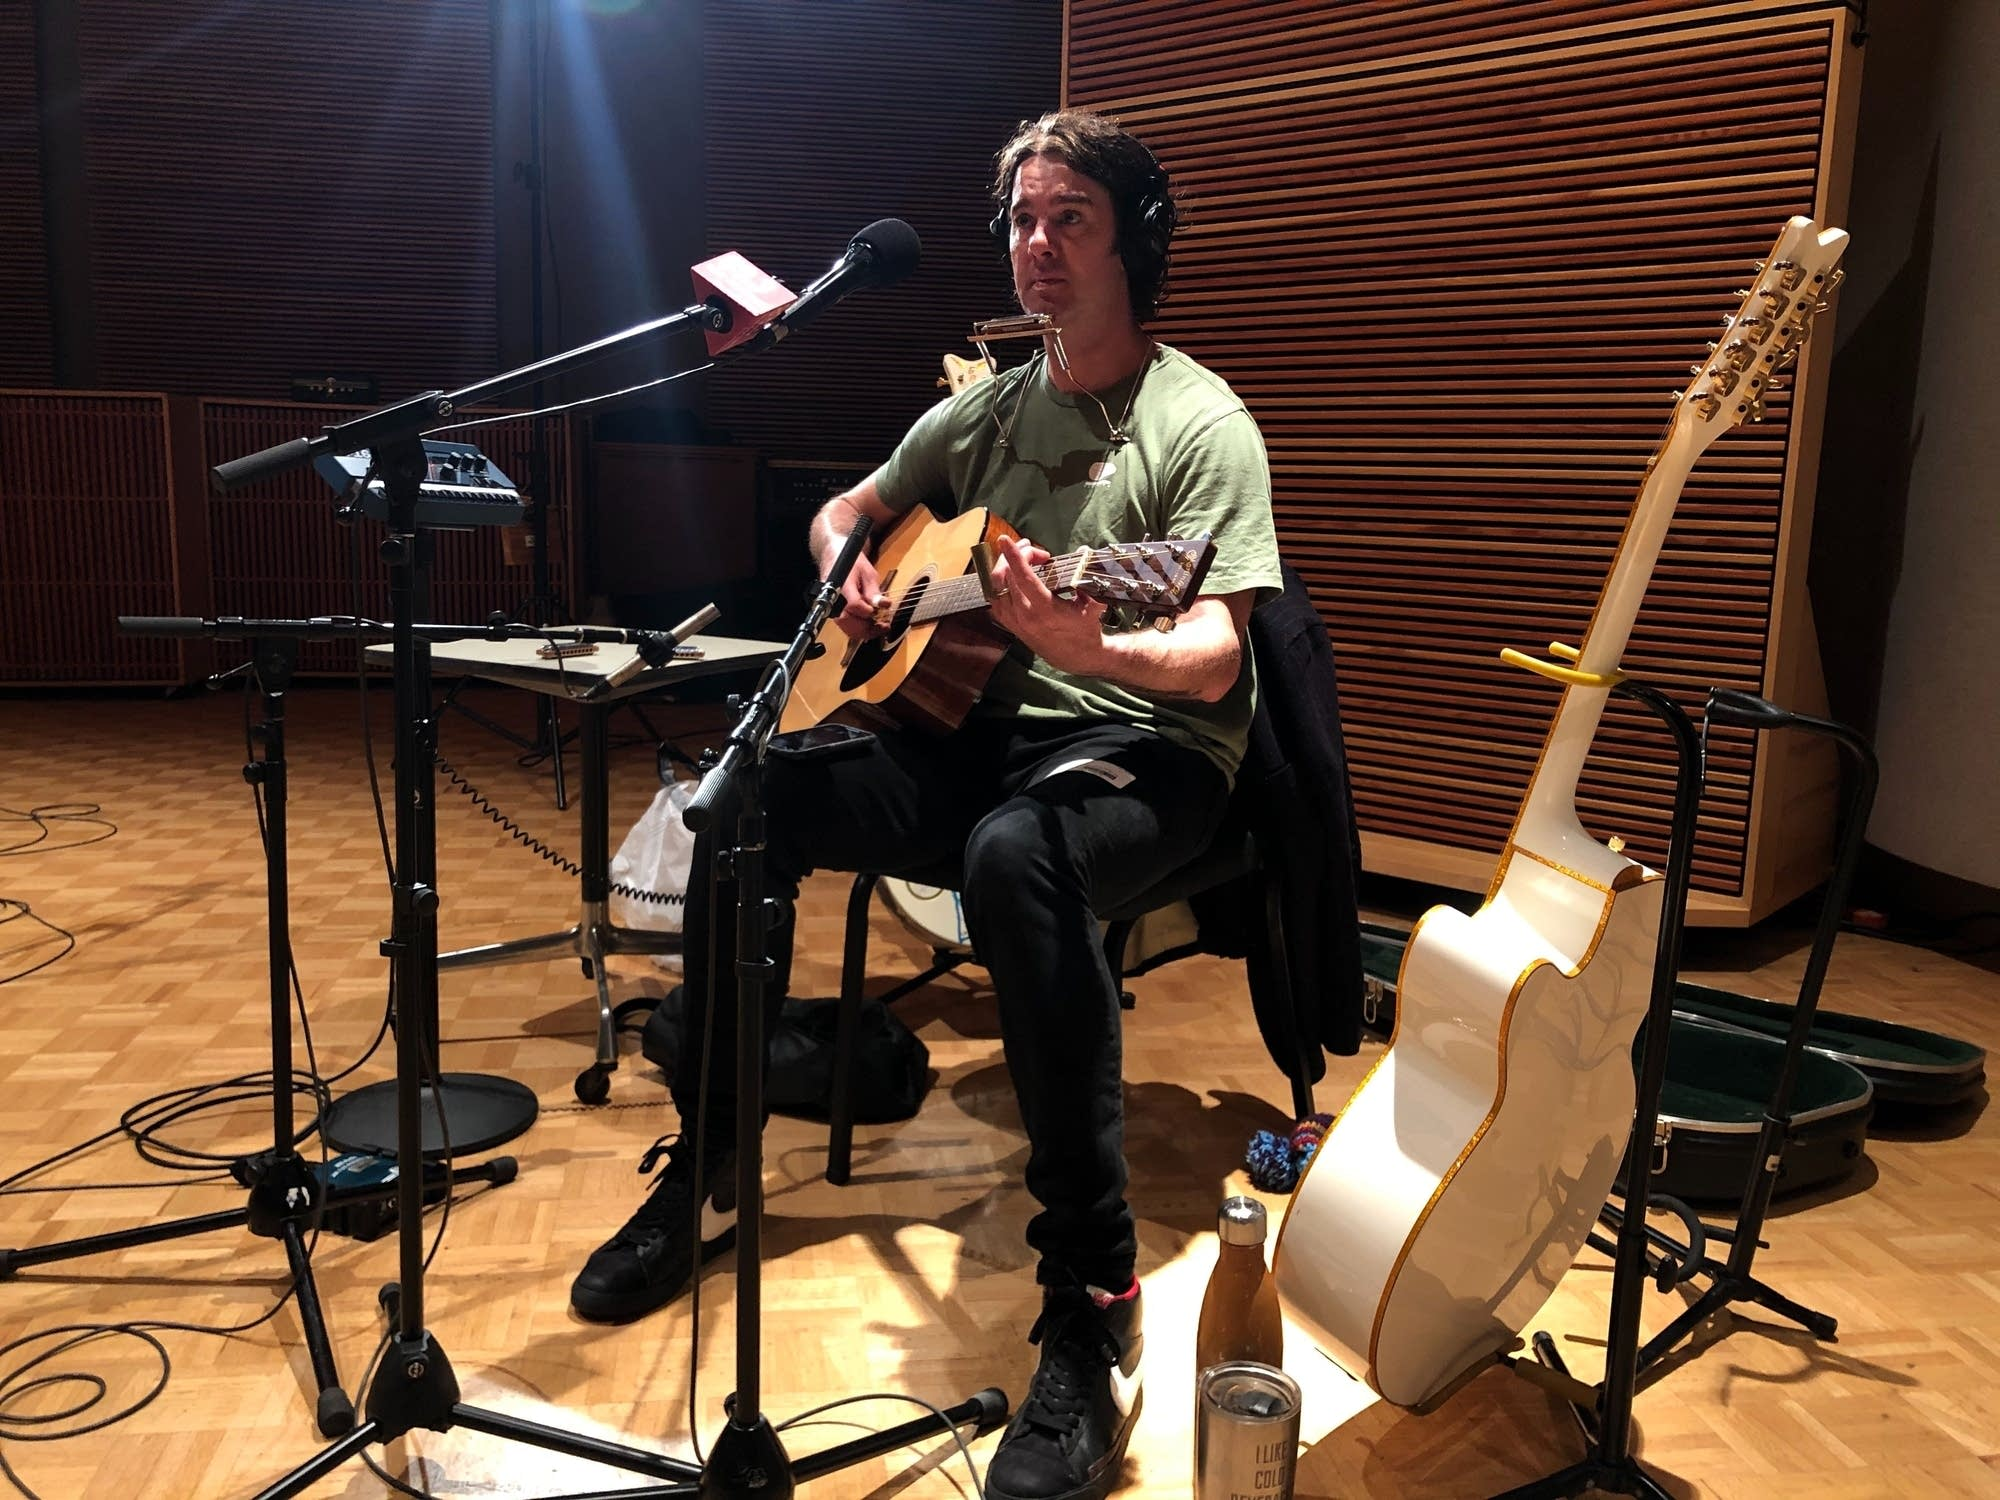 G Love performs in The Current studio